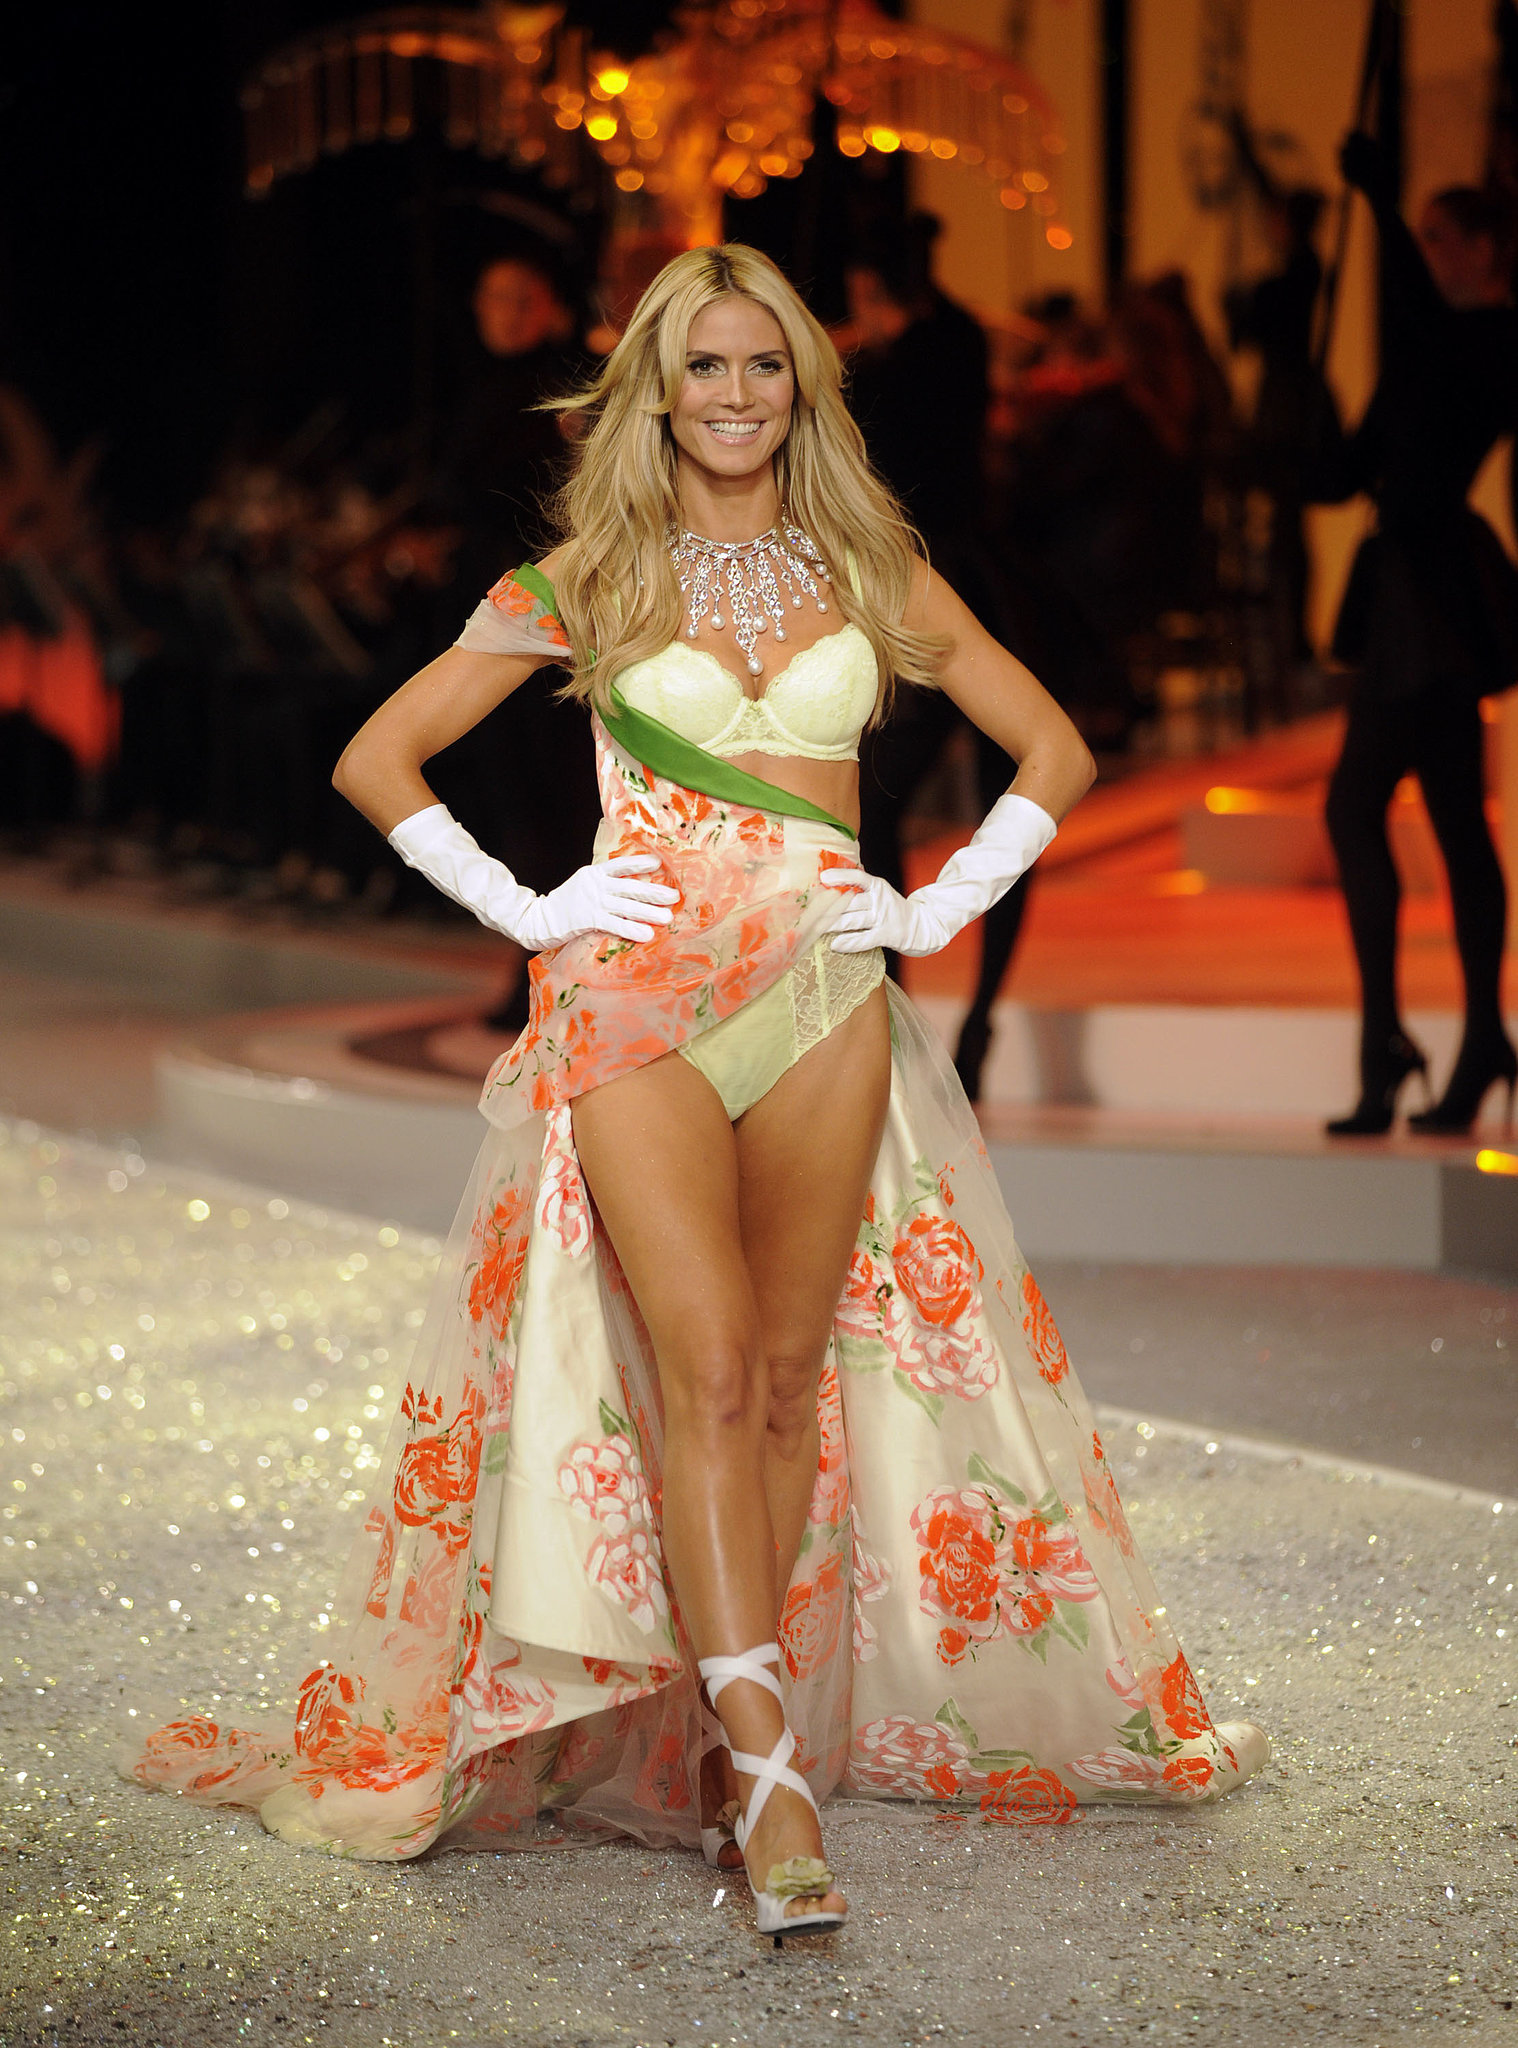 Heidi wore a pretty floral getup with a statement necklace in 2008.